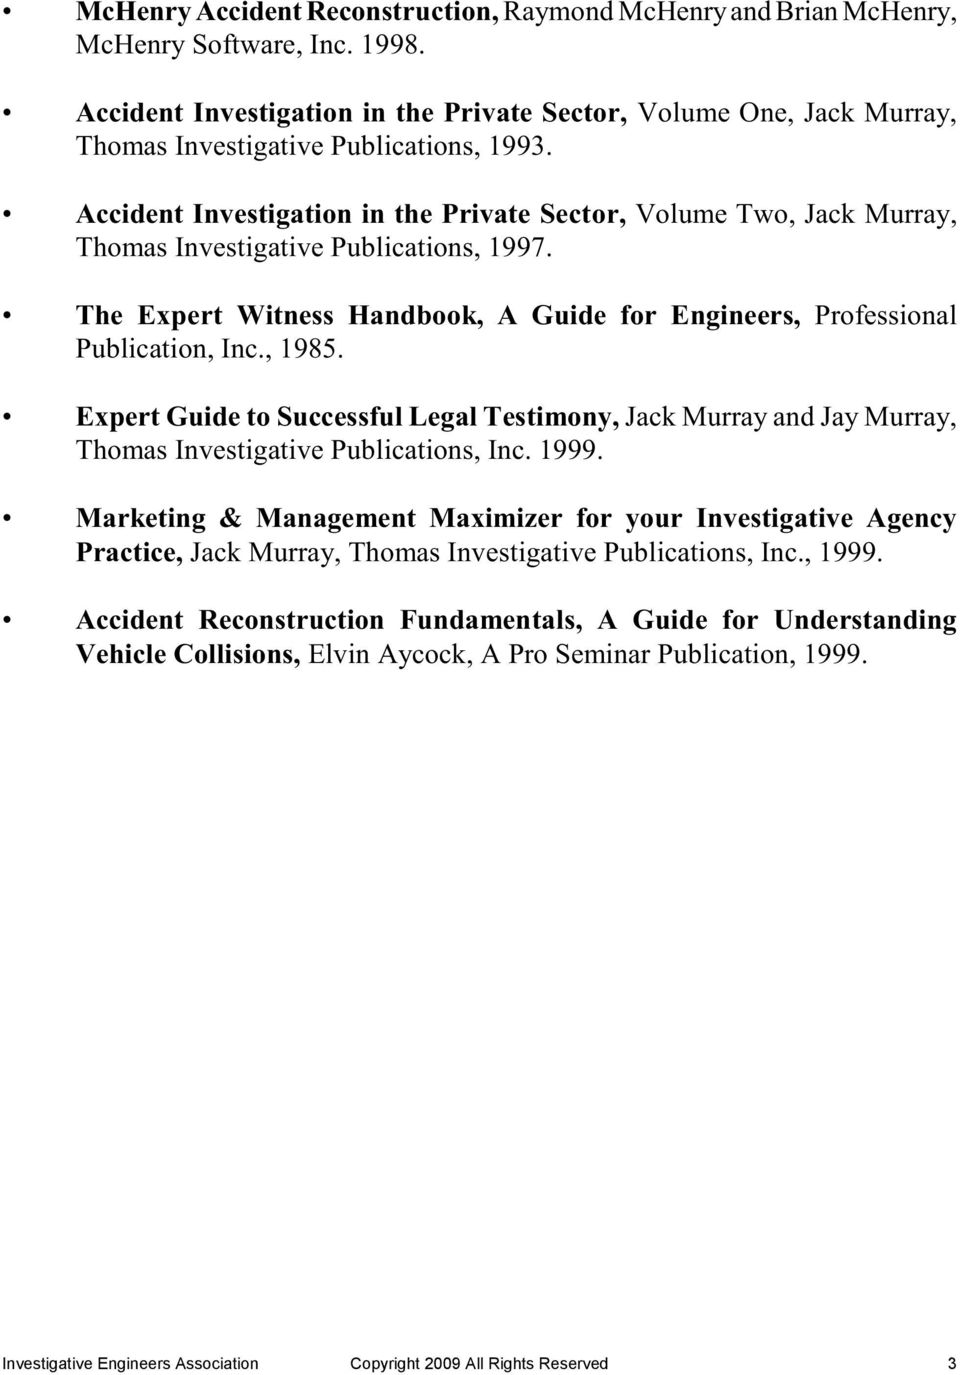 Accident Investigation in the Private Sector, Volume Two, Jack Murray, Thomas Investigative Publications, 1997. The Expert Witness Handbook, A Guide for Engineers, Professional Publication, Inc.